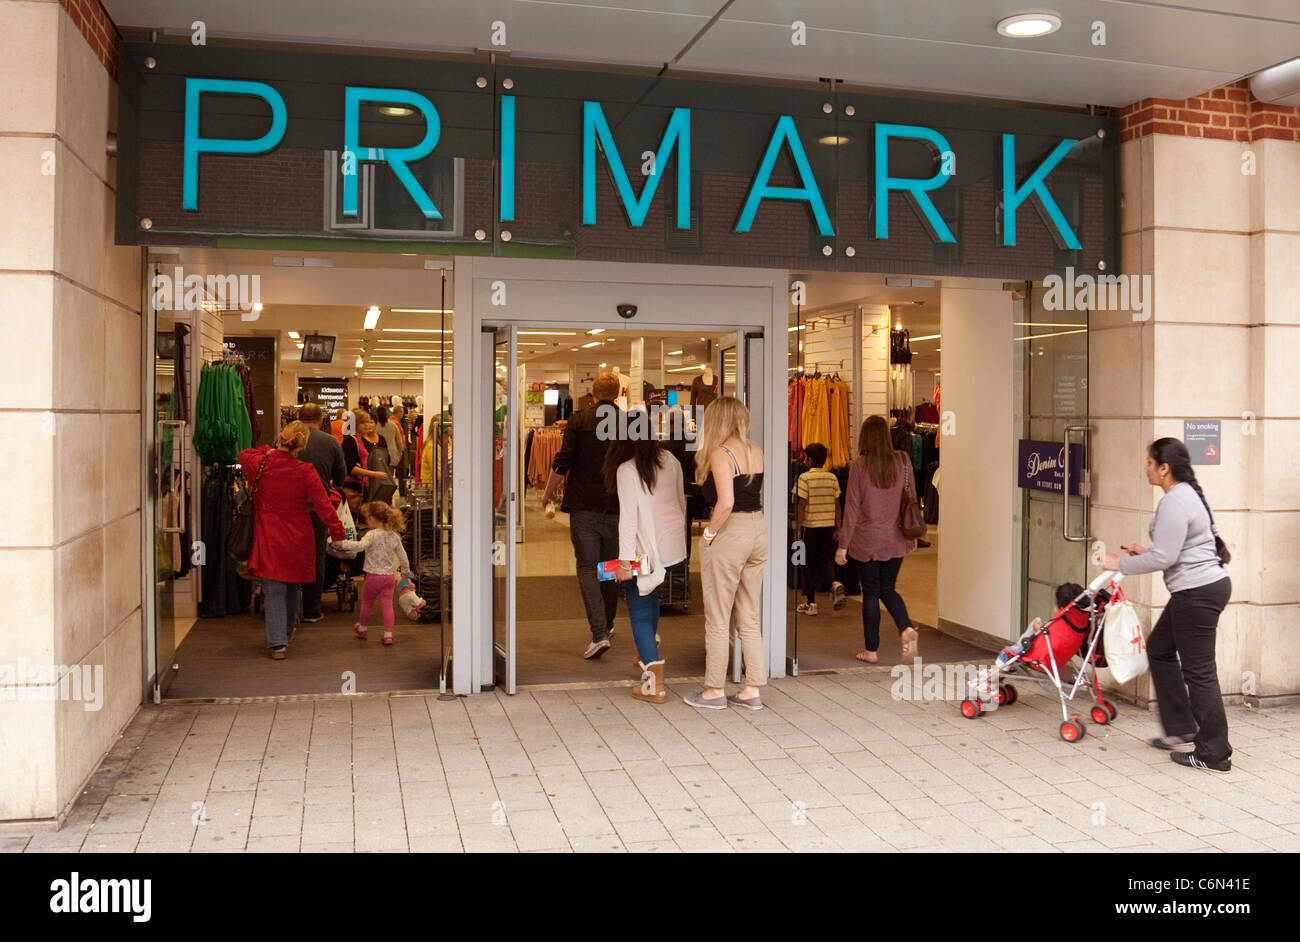 Primark clothing online store uk